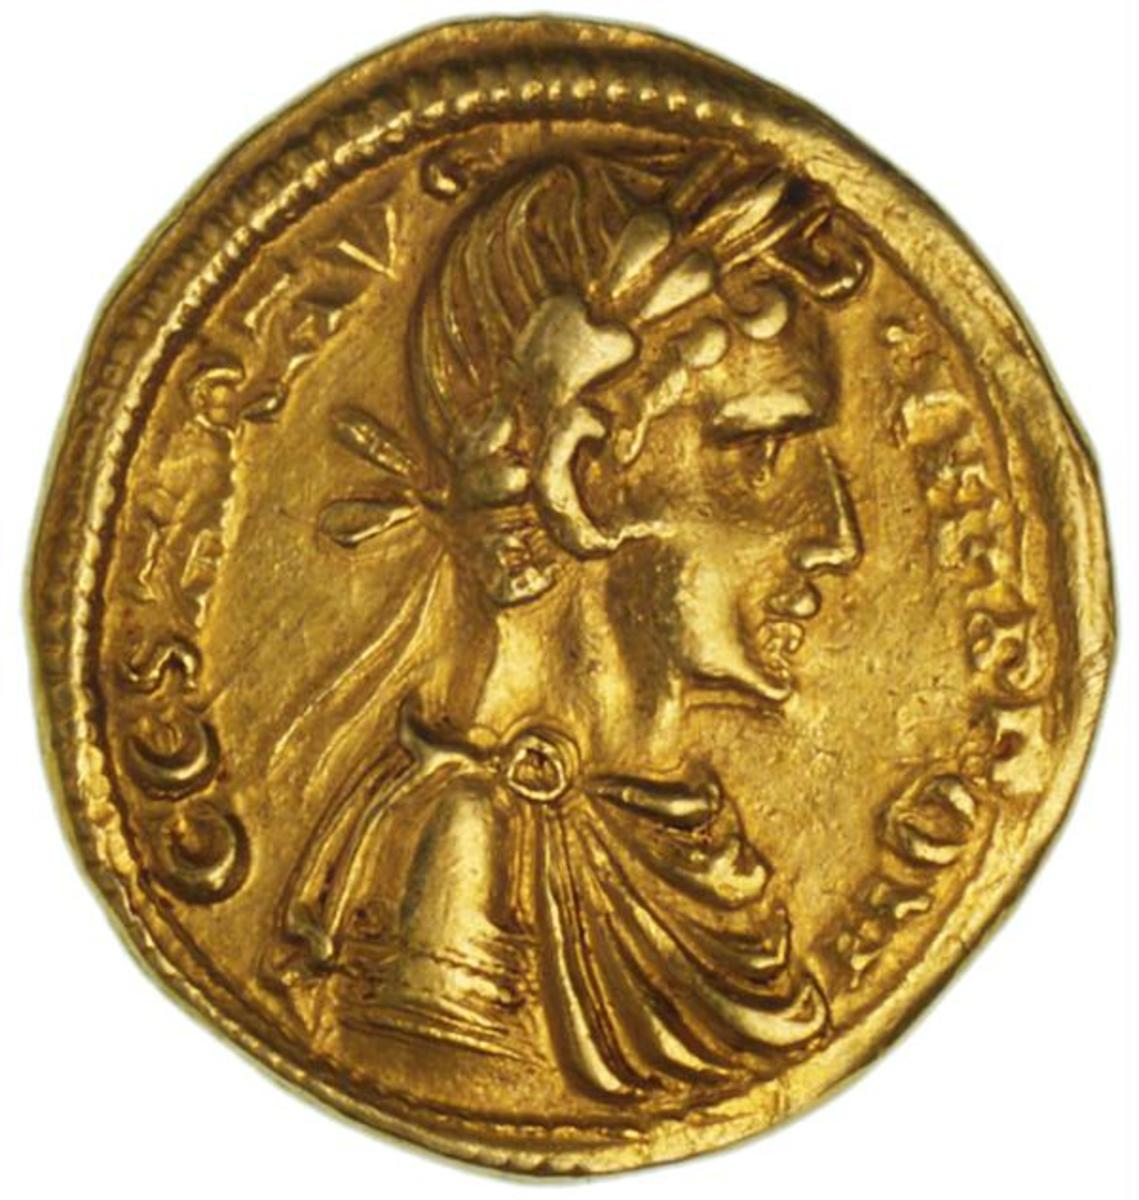 GOLD COIN BEARING IMAGE OF FREDERICK II